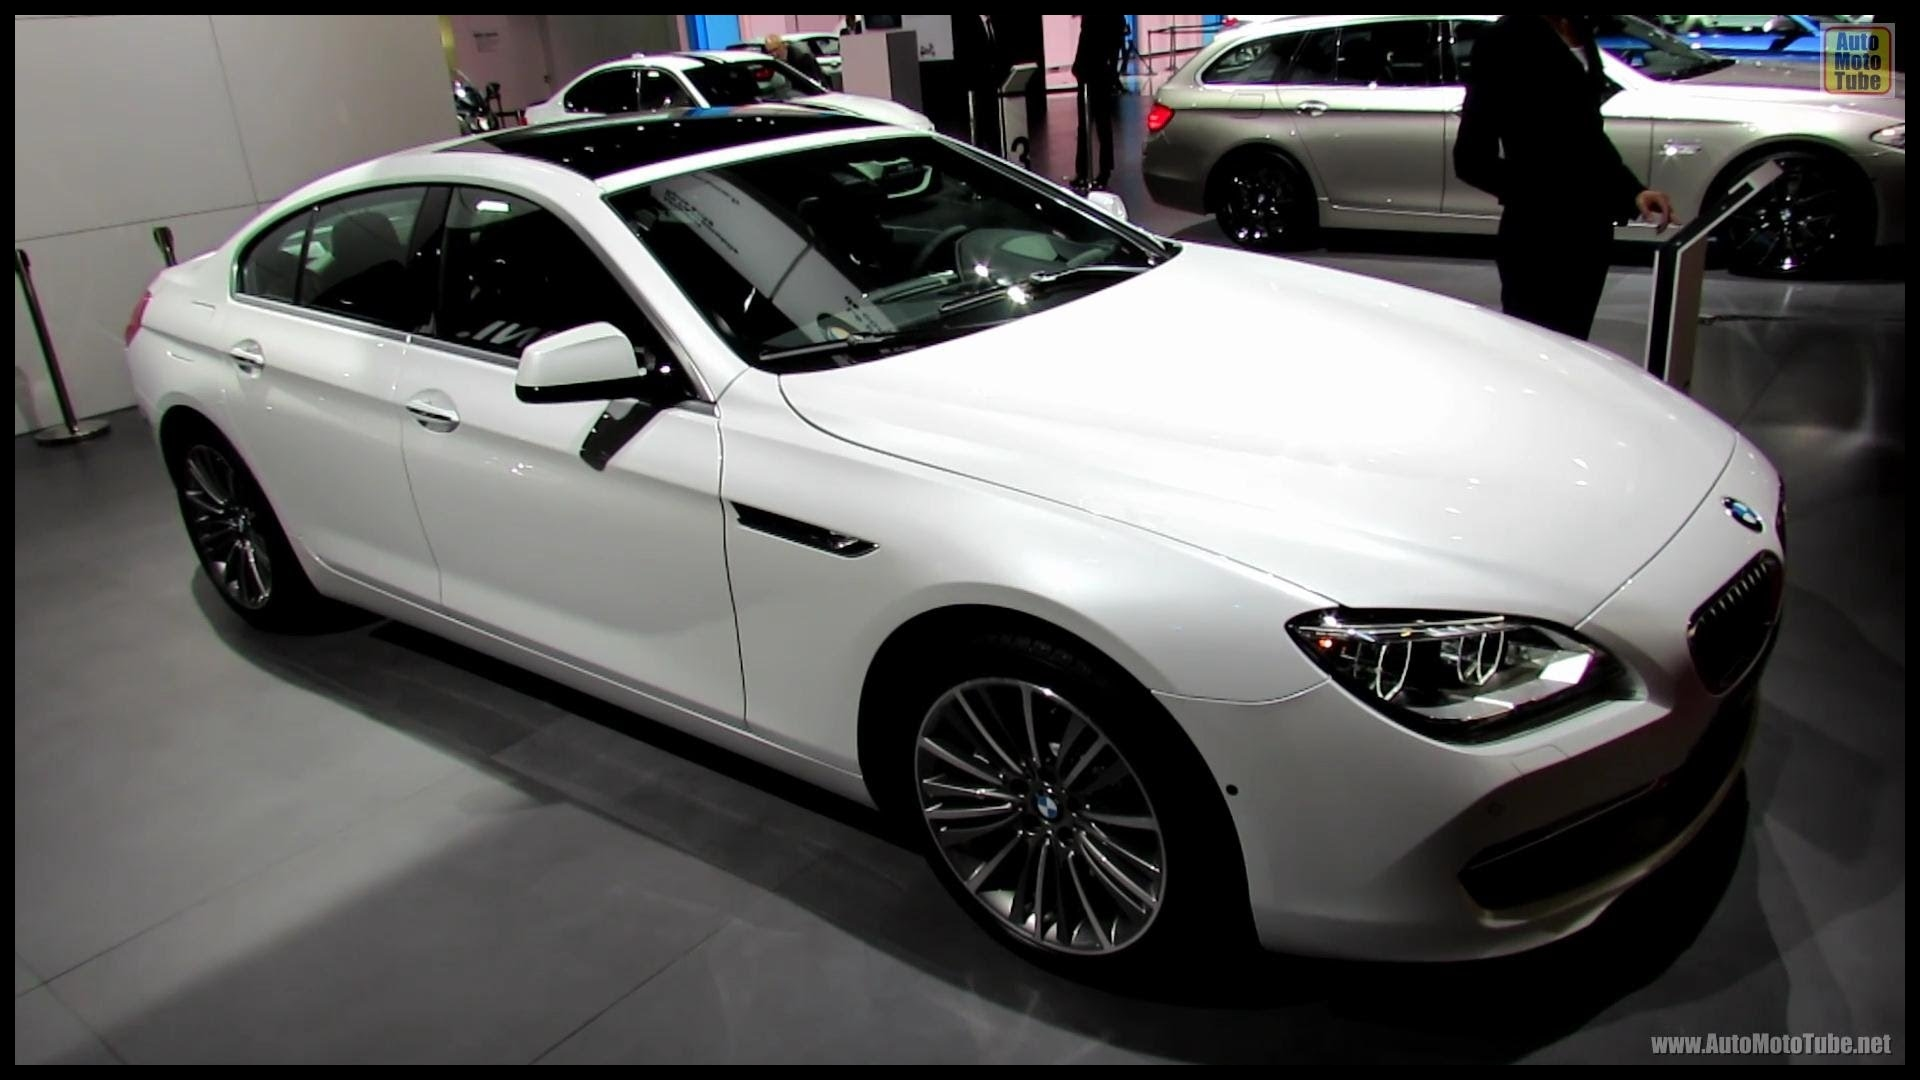 2013 BMW 650i xDrive Gran Coupe Exterior and Interior Walkaround 2012 Paris Auto Show